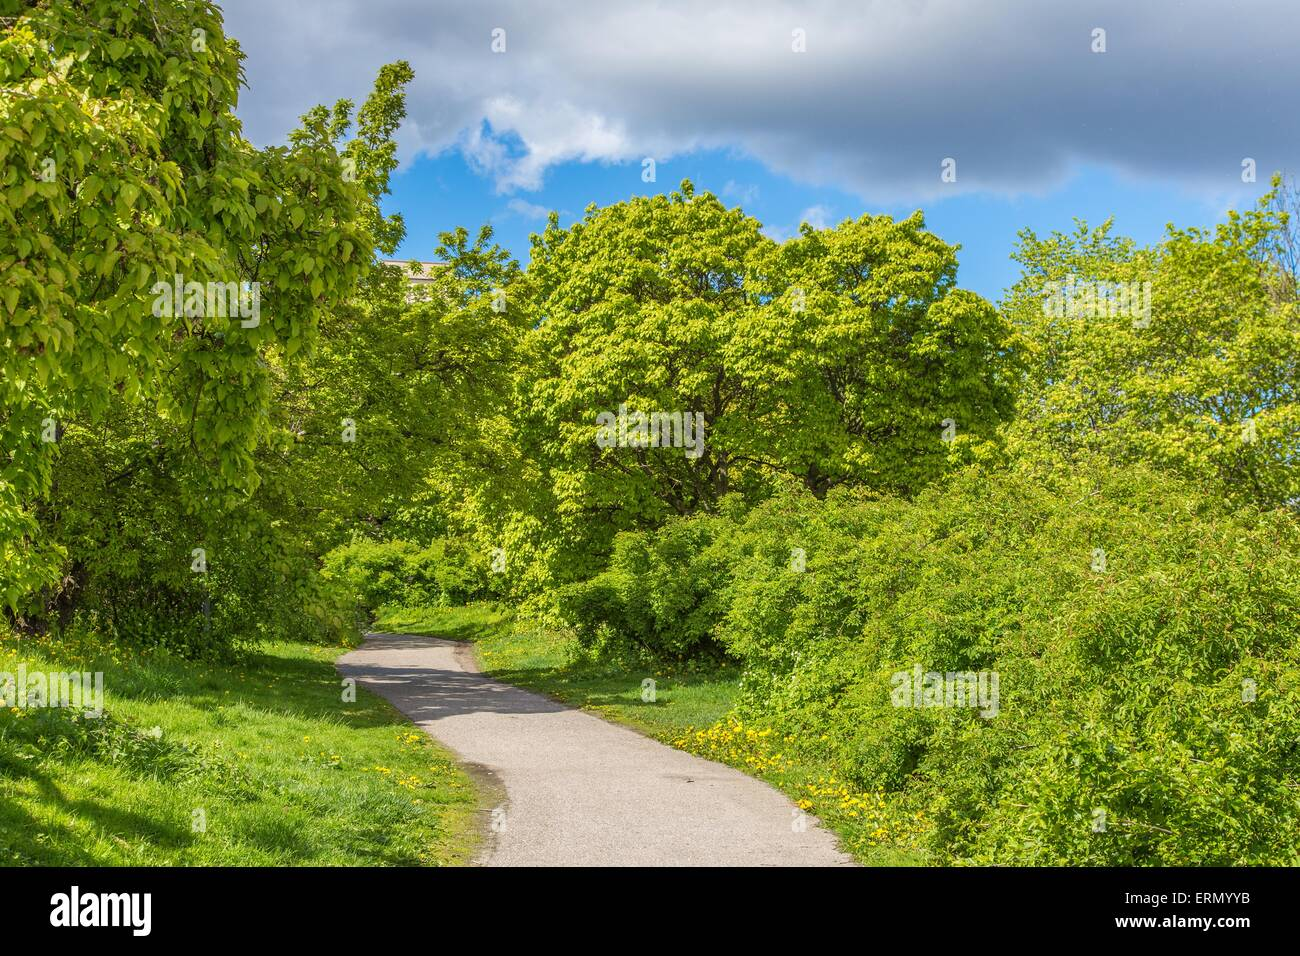 Beautiful Glade During Summertime with Green Bushes, Trees and a Cloudy Sky in Stockholm, Sweden Stock Photo